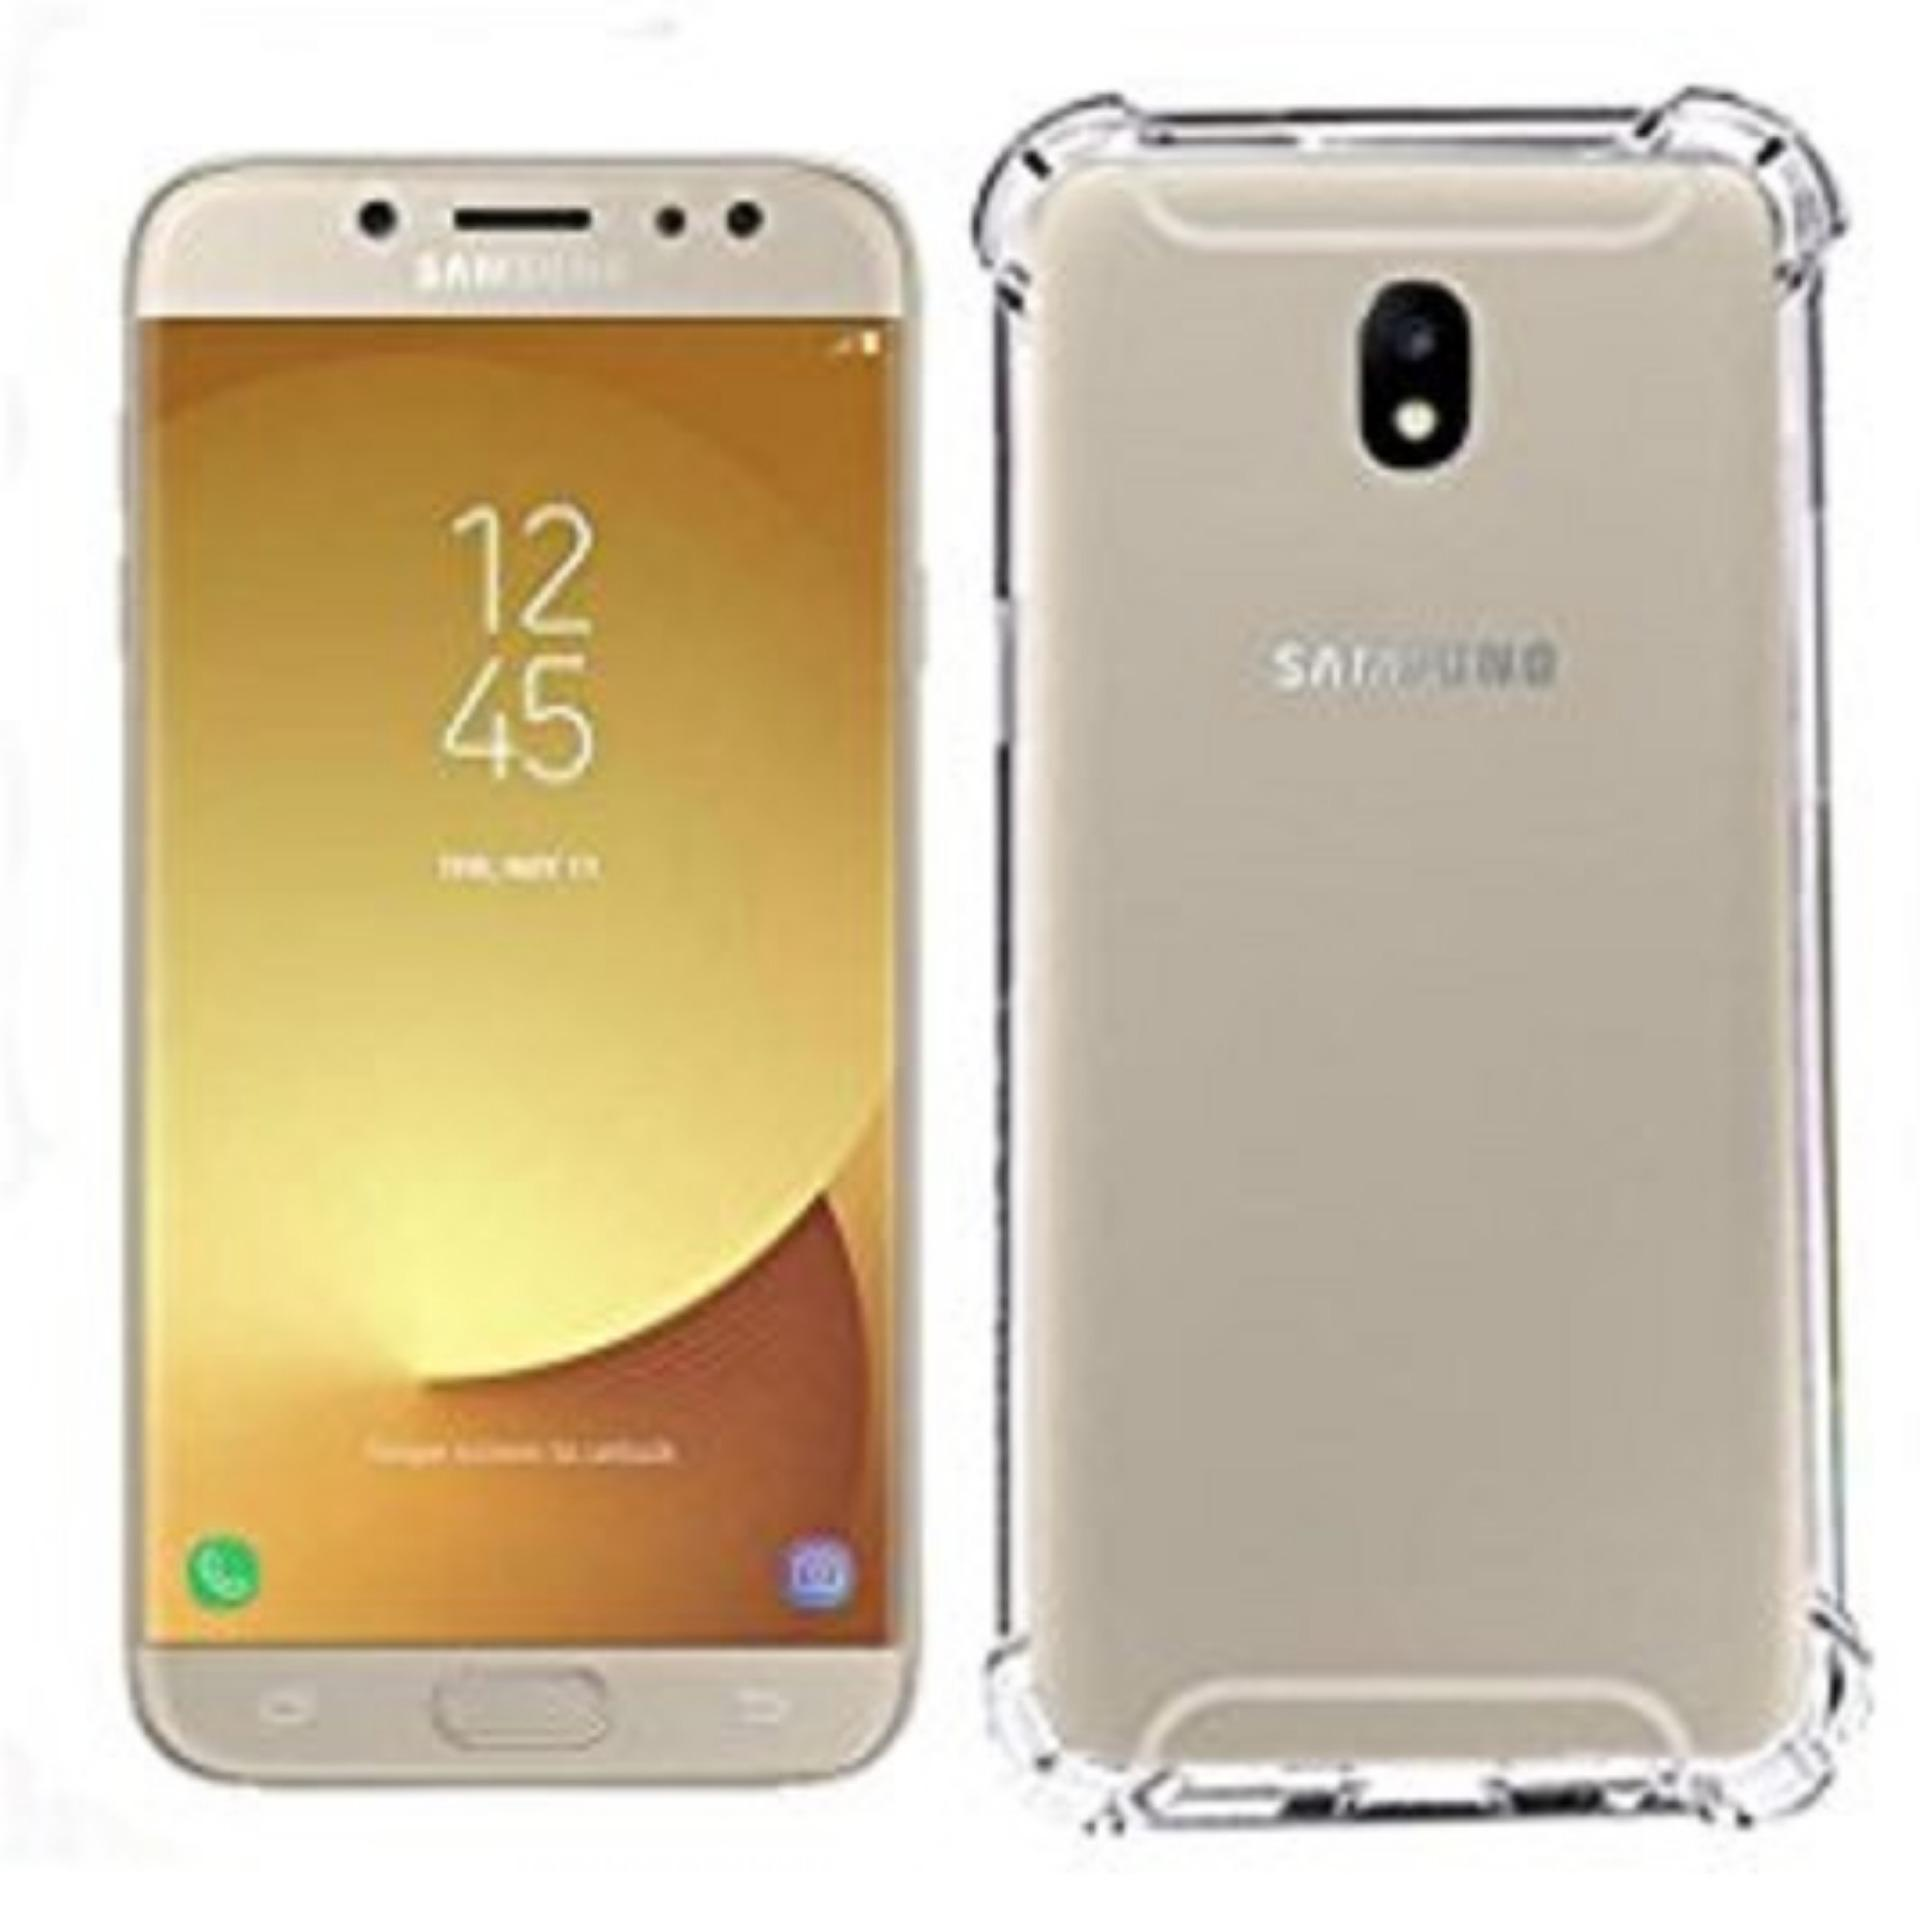 Rp 9900 ShockCase For Samsung Galaxy J7 Pro J730 4G LTE